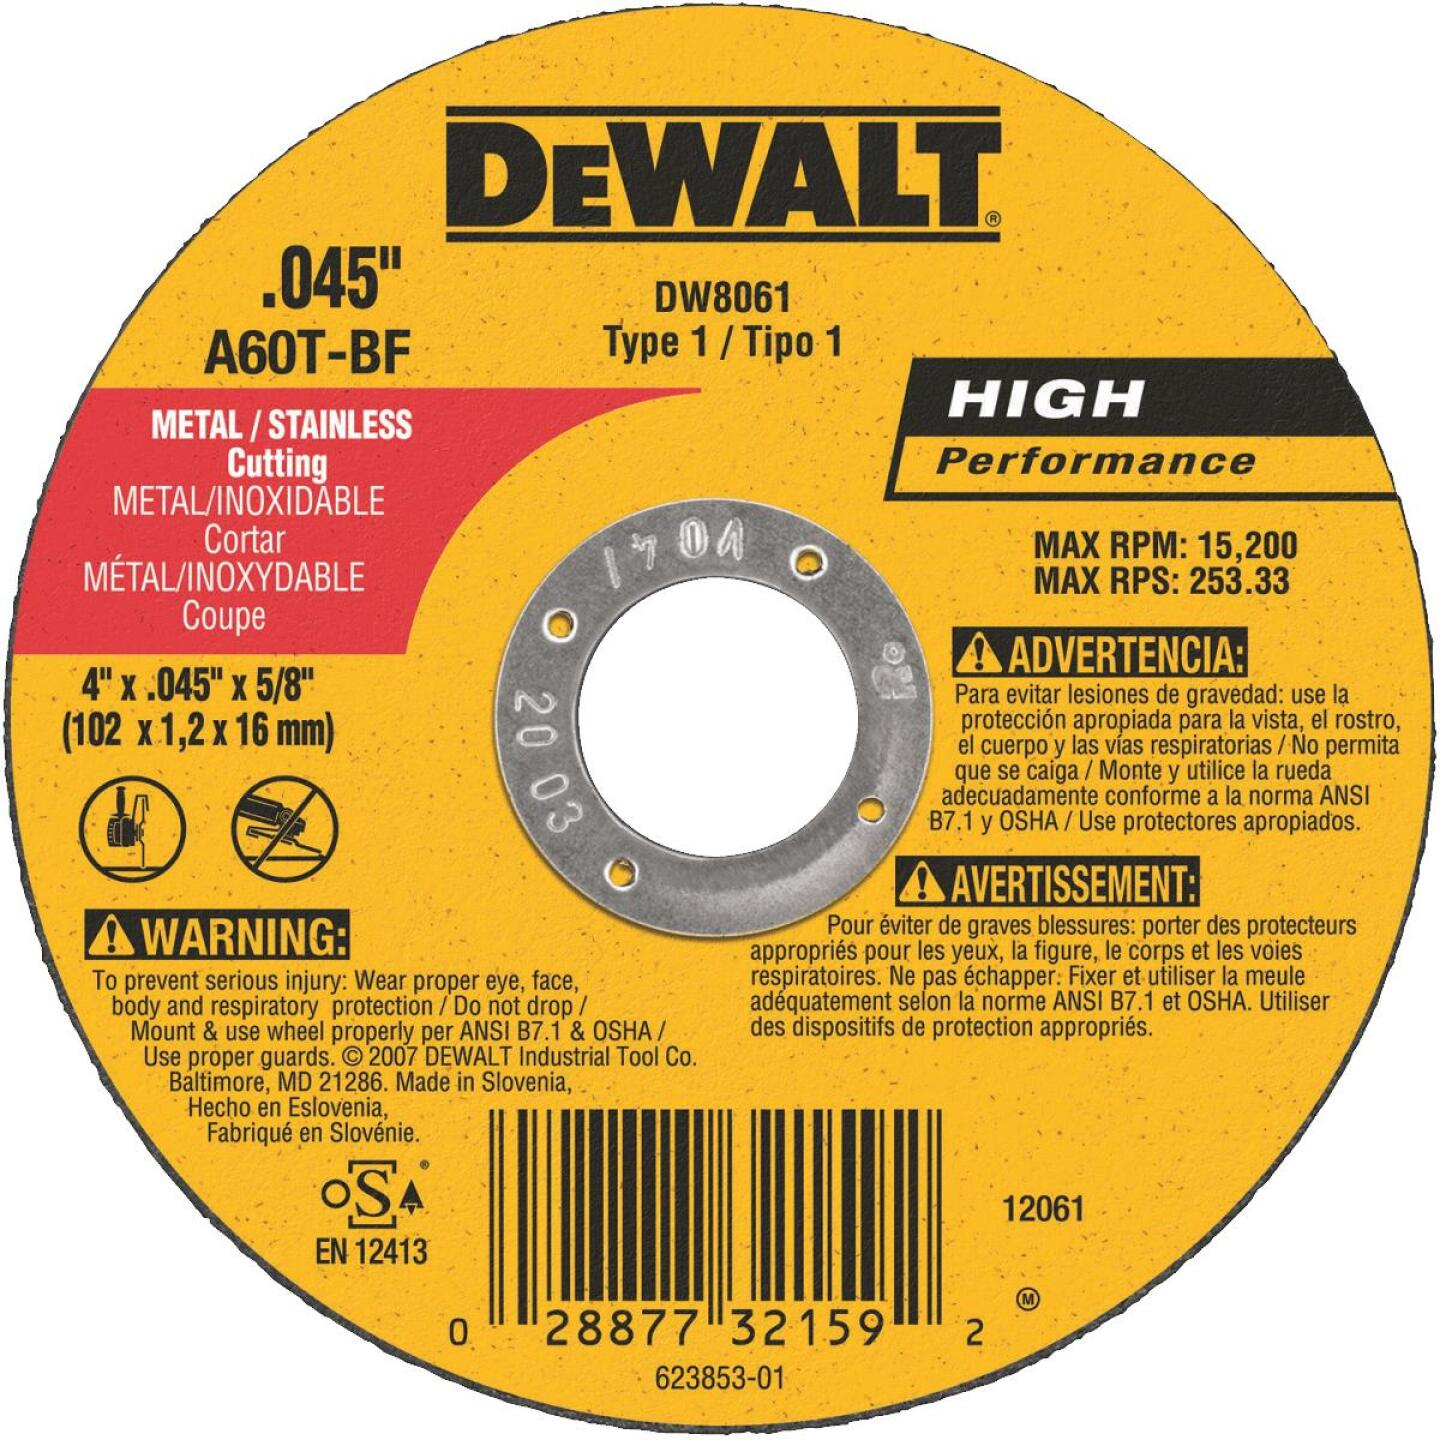 DeWalt HP Type 1 4 In. x 0.045 In. x 5/8 In. Metal/Stainless Cut-Off Wheel Image 1